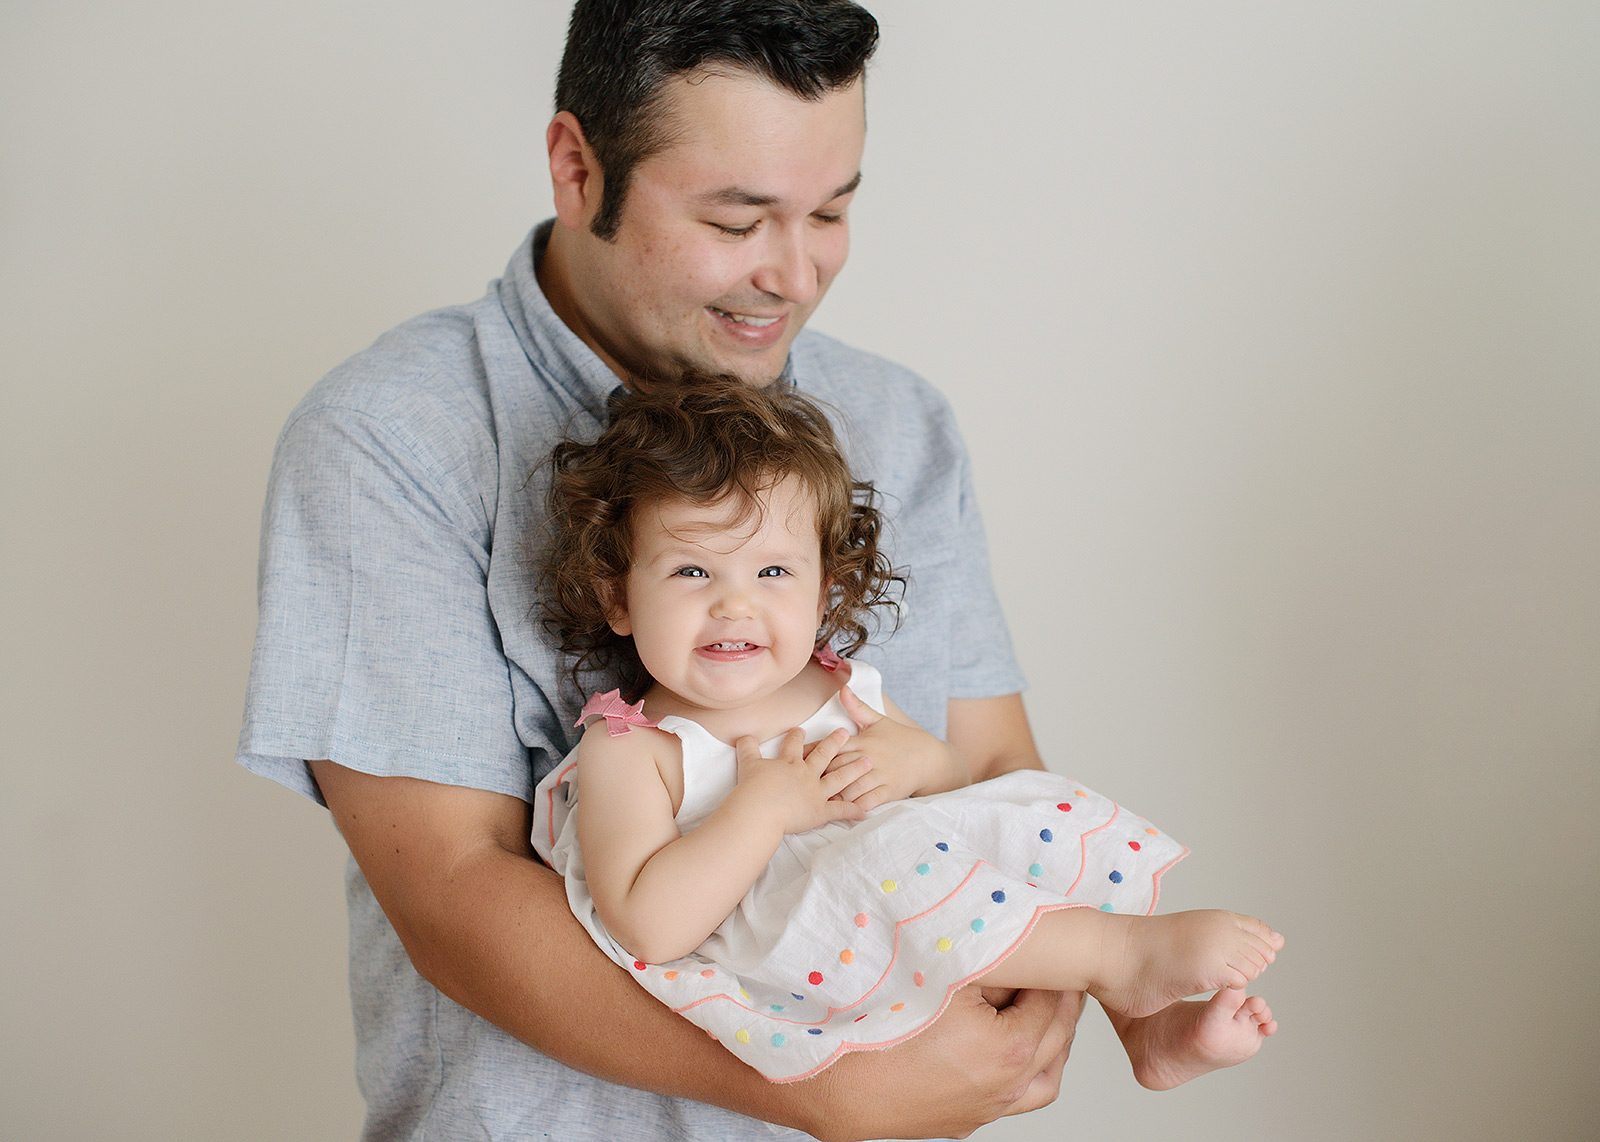 Dad Holding Baby Girl Who is Smiling Against White Background